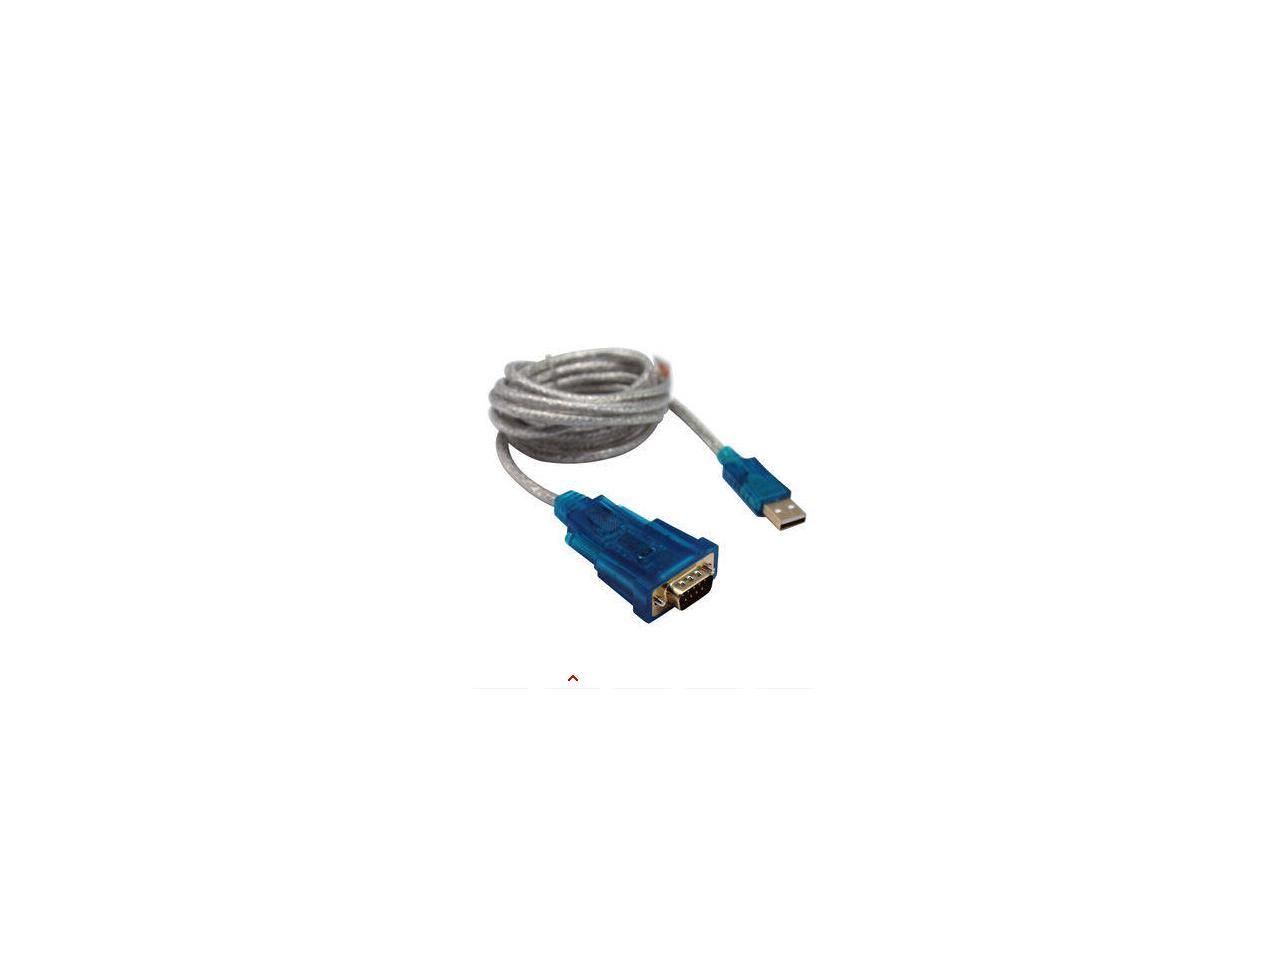 DTECH DB9 RS232 to RJ45 Serial Adapter S232 Male to RJ-45 CAT5 CAT6 Female Ethernet Converter Compatible with Standard 9 Pin RS-232 Devices